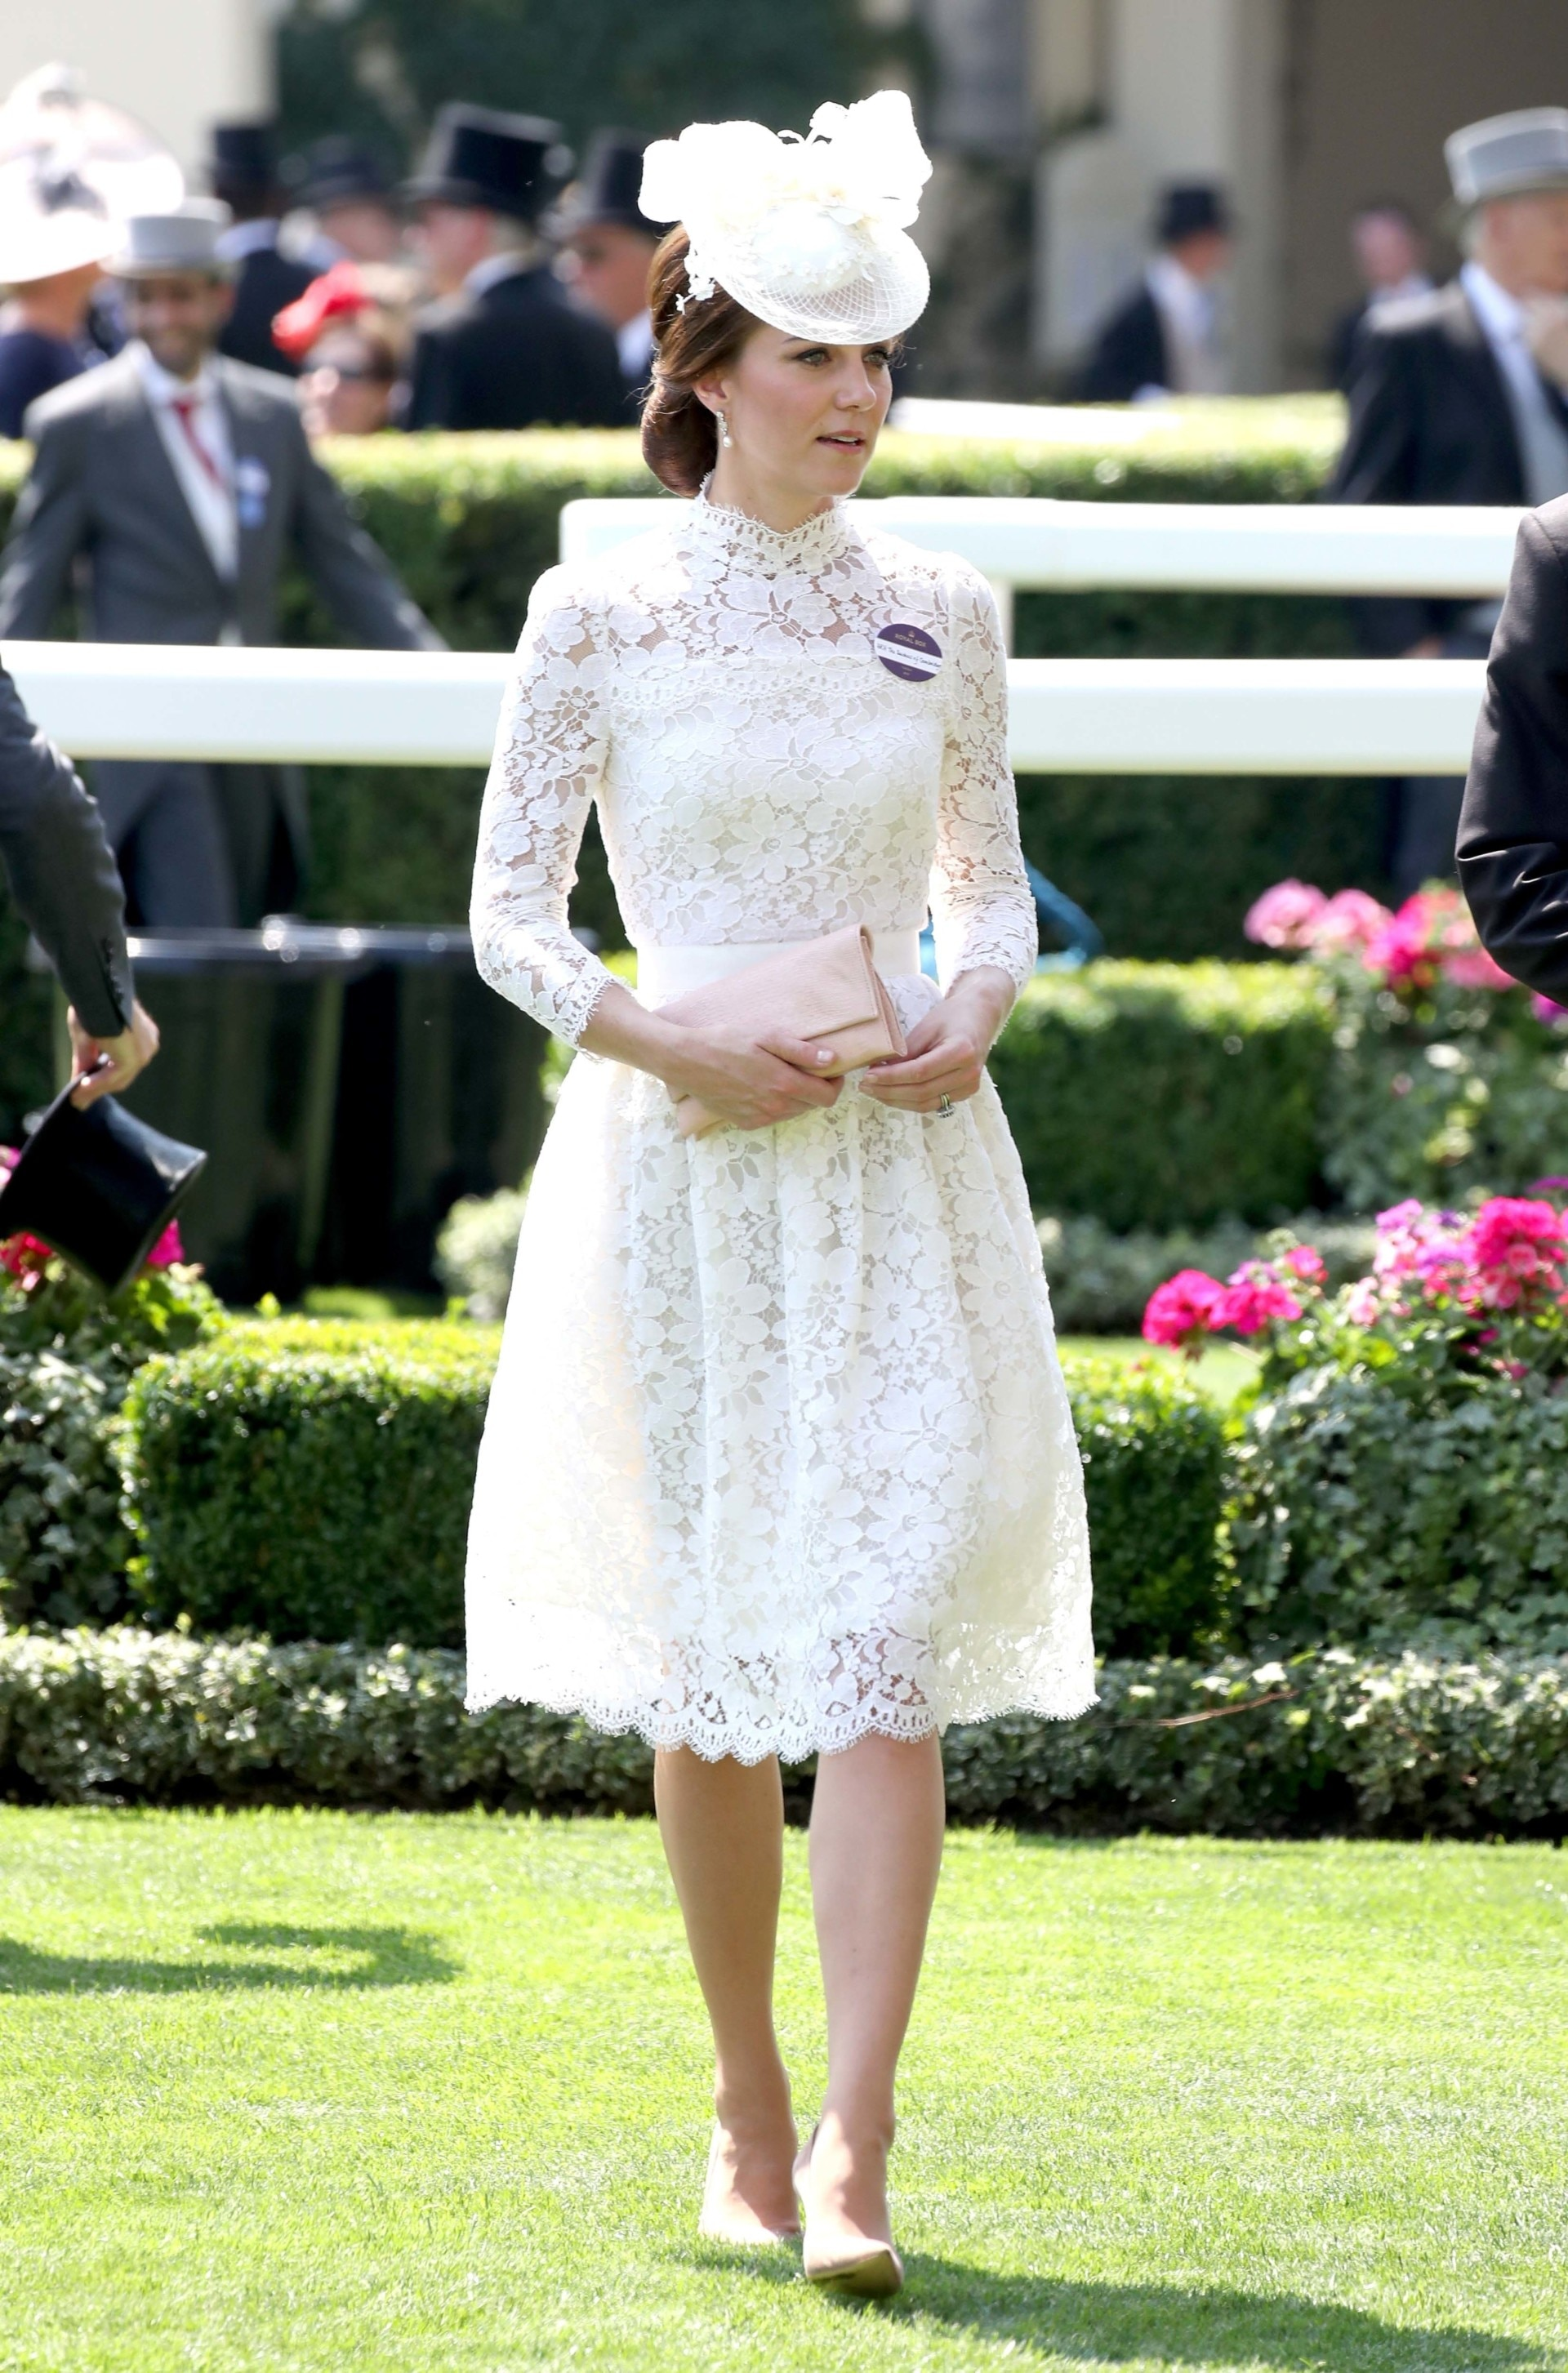 Racing outfit inspiration from your favourite royals